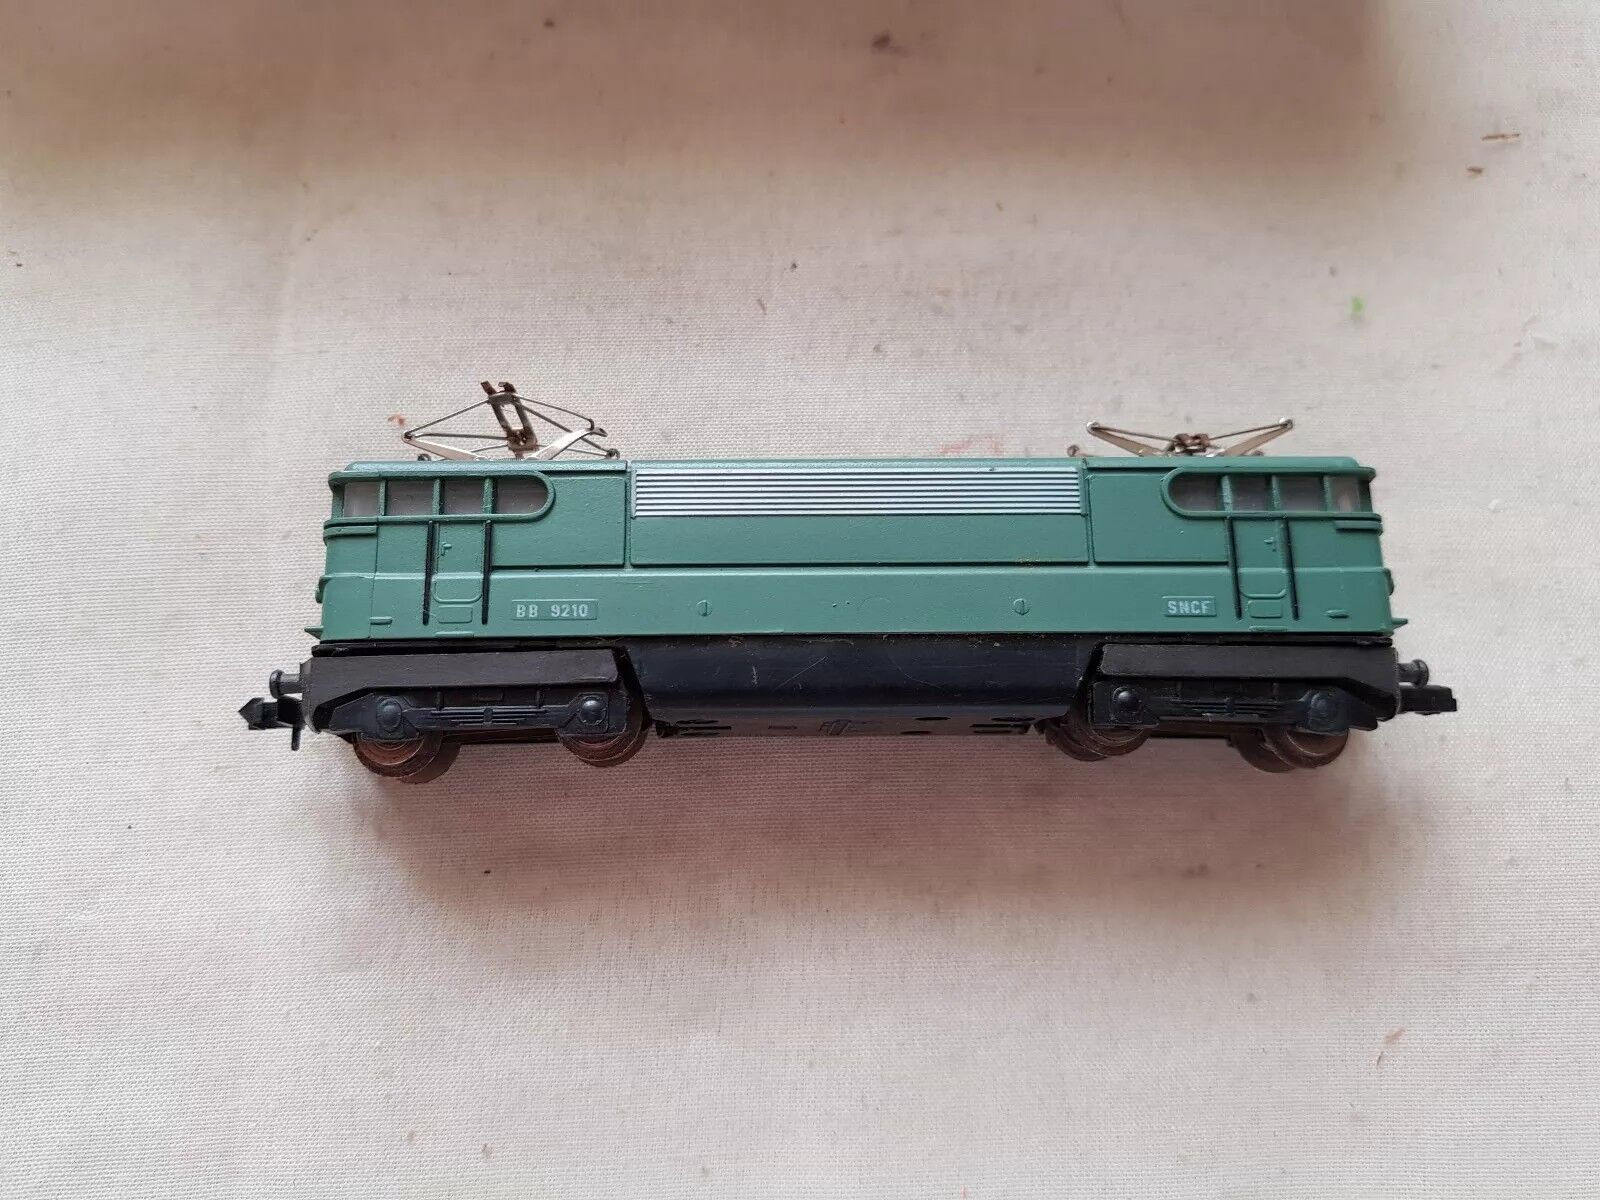 A model railway Sncf Locomotive In N Gauge By Piko Boxed Fully Working